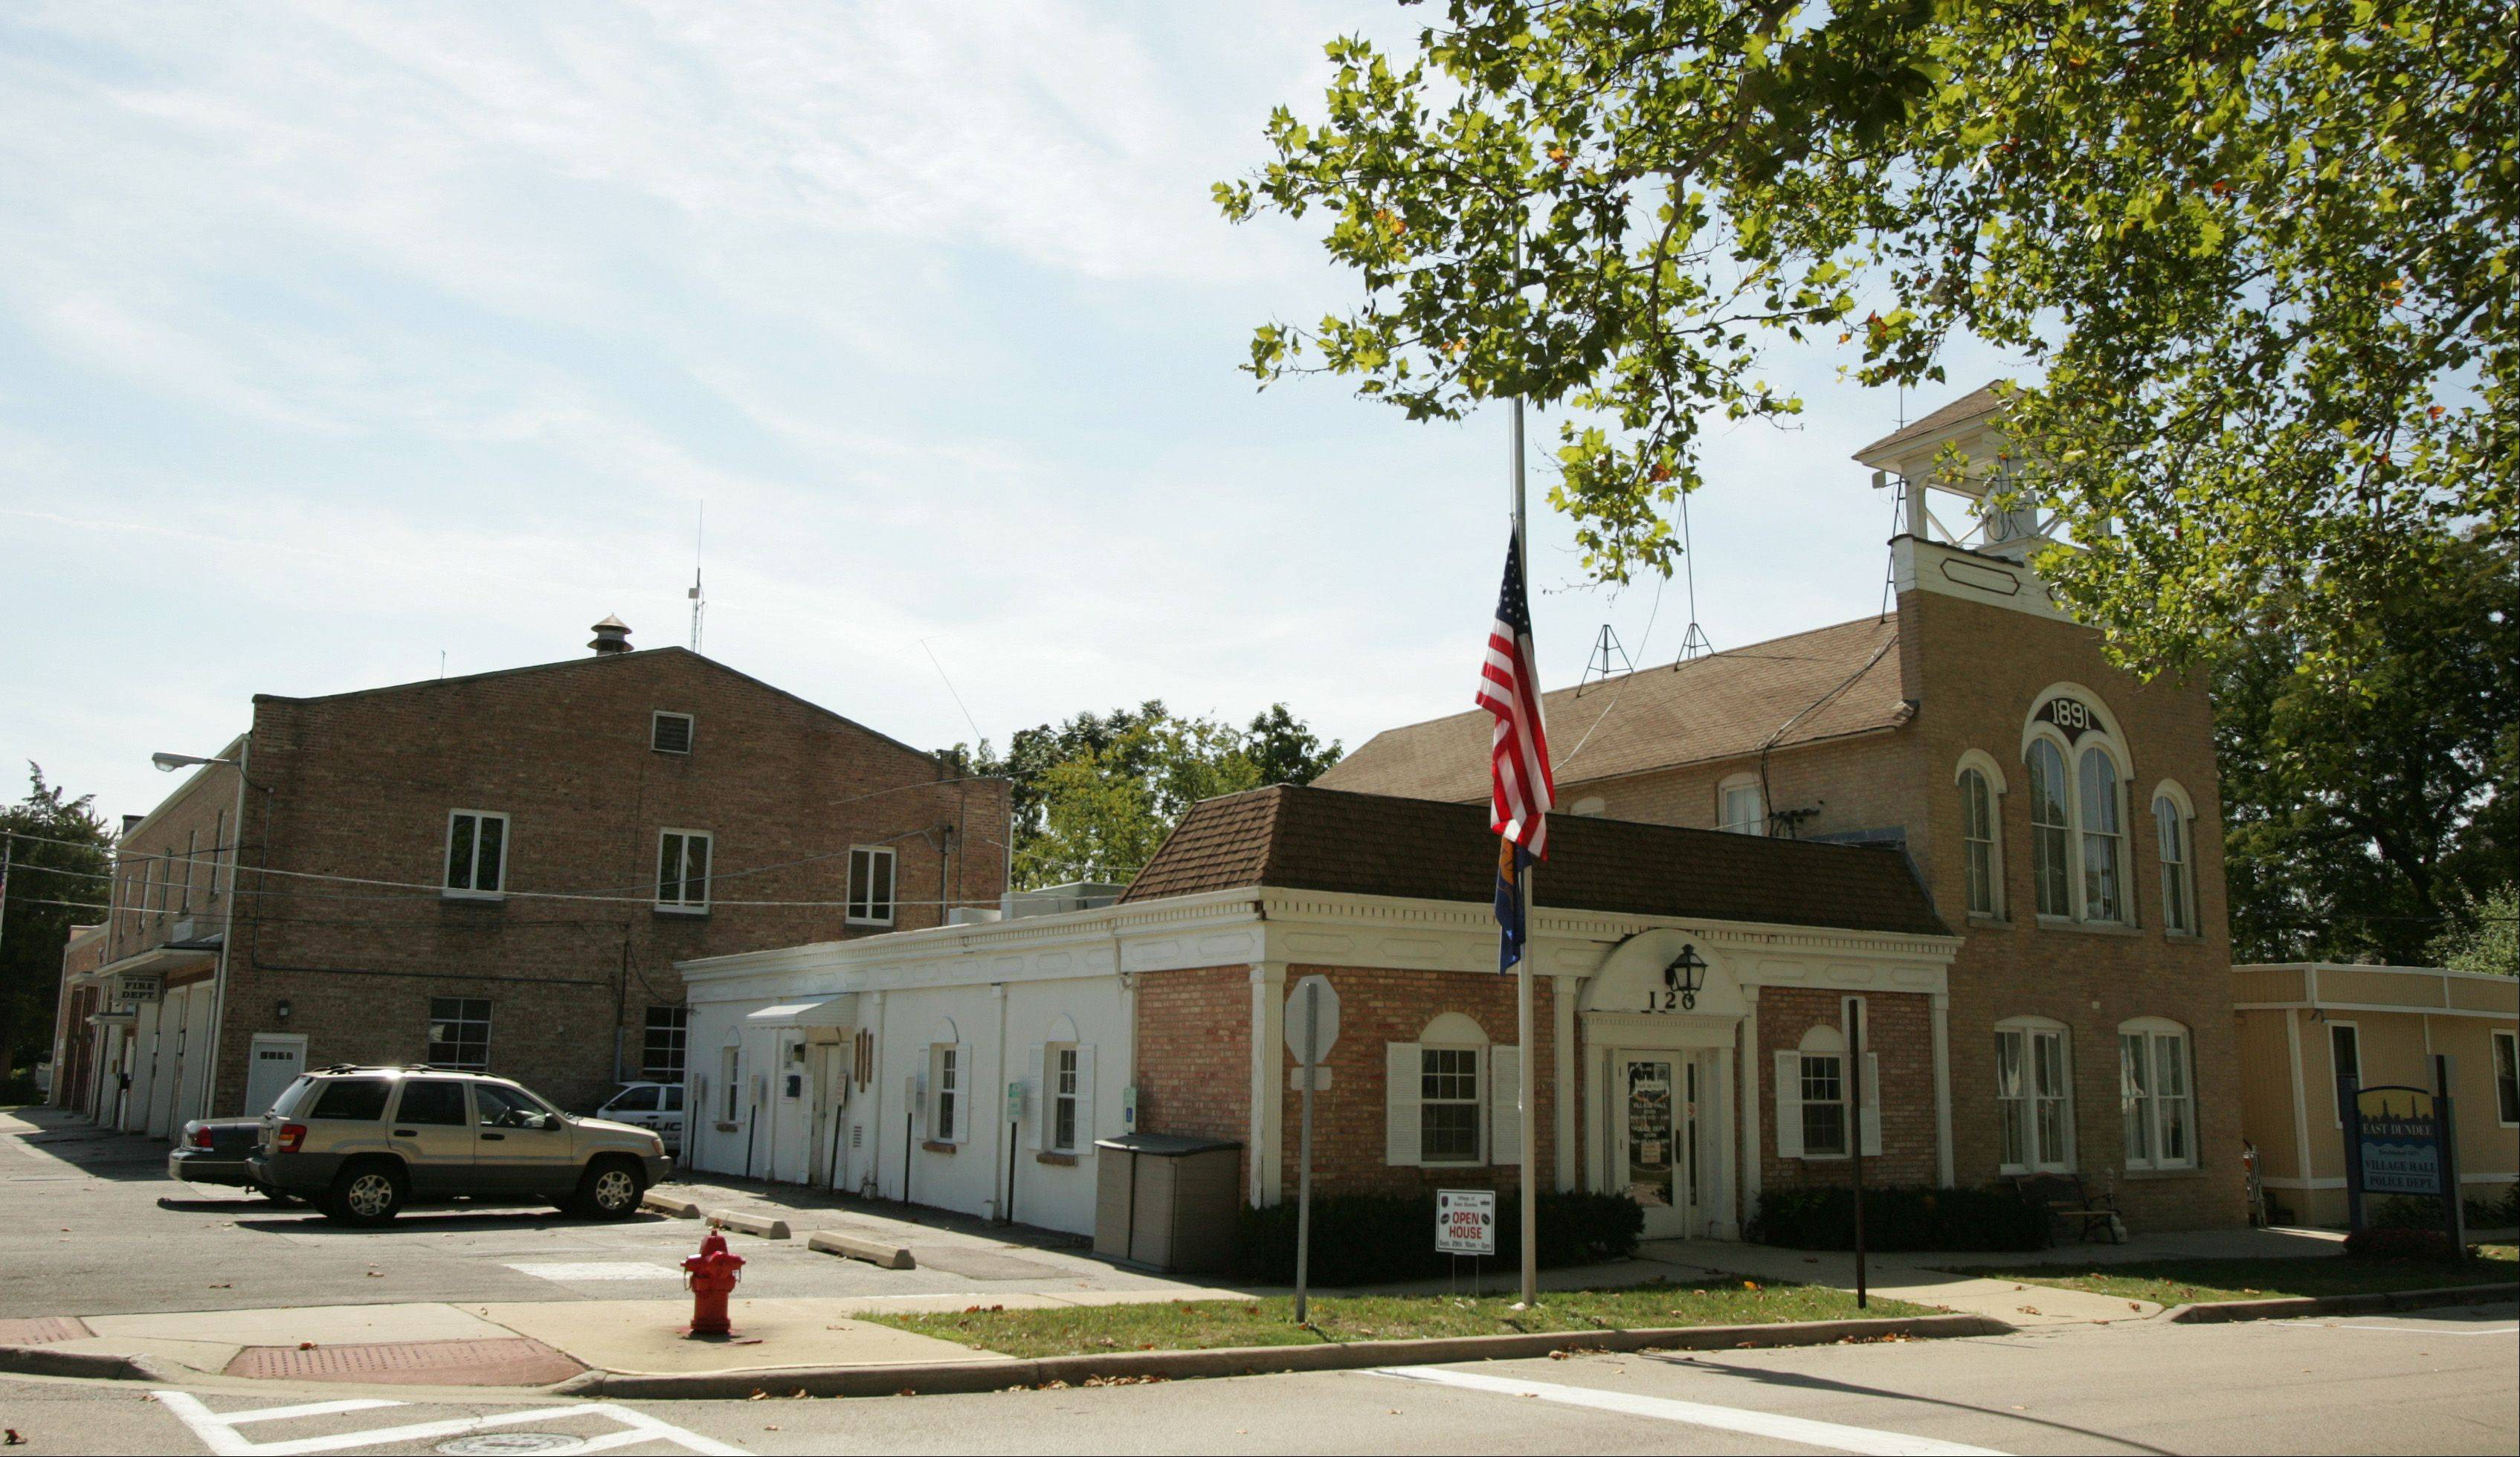 East Dundee's village hall, police station and fire department are all squeezed onto the same block downtown. If the fire district wins voter approval to build a new station farther east, the village would contribute to its construction and then revamp the old fire station into a more modern police station and village hall.